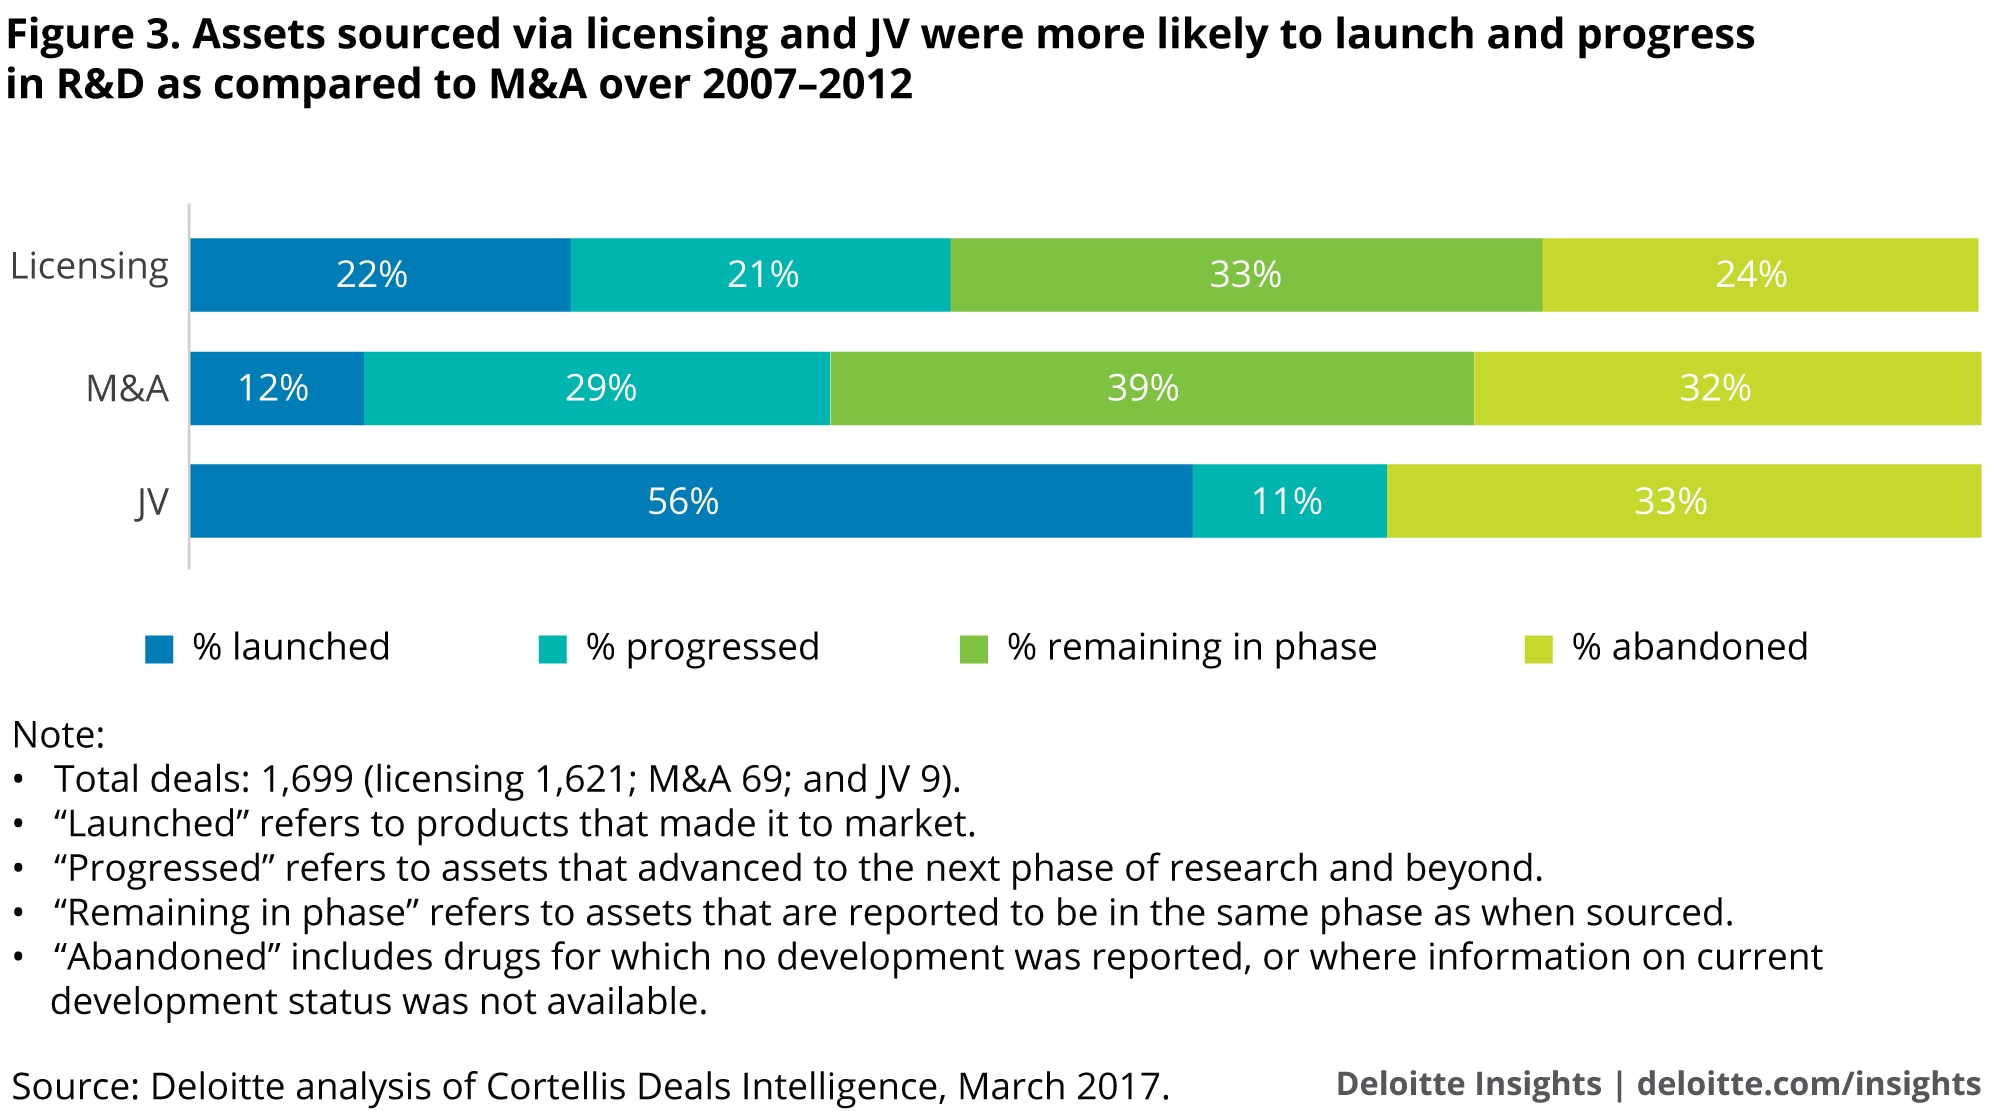 Assets sourced via licensing and JV were more likely to launch and progress in R&D as compared to M&A over 2007–2012